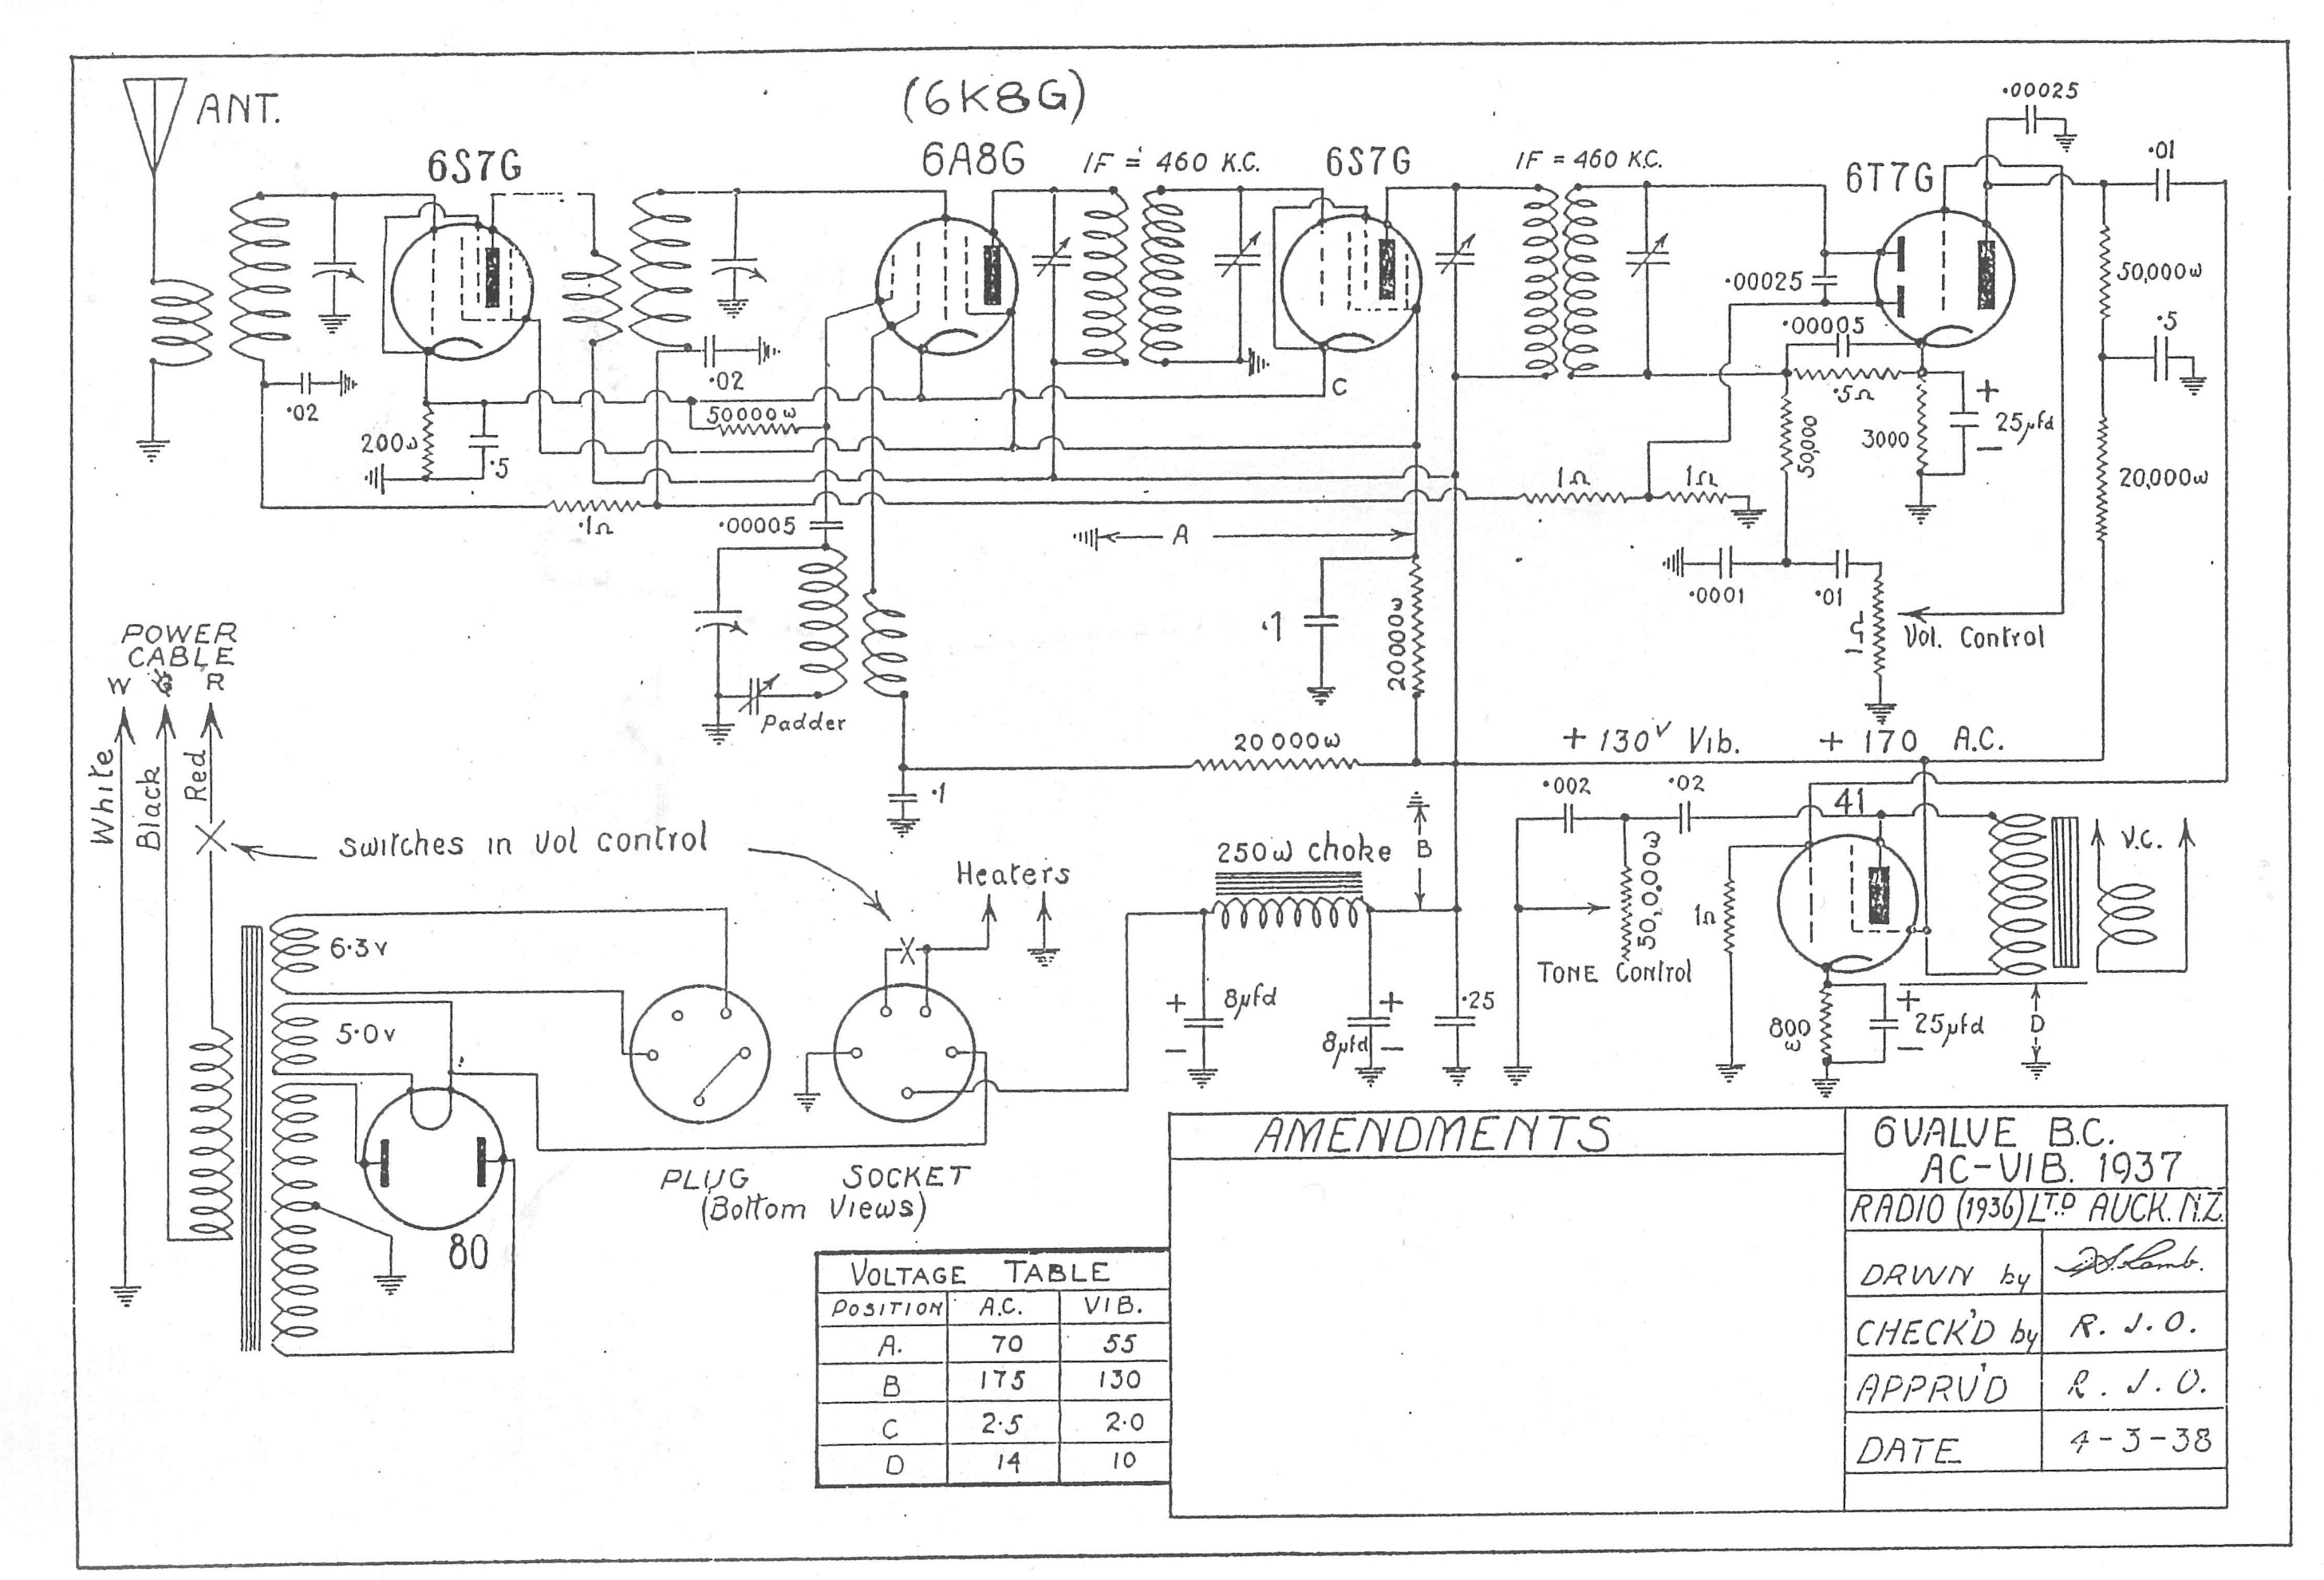 1937 Radio Ltd BTU BTR BT Schematic